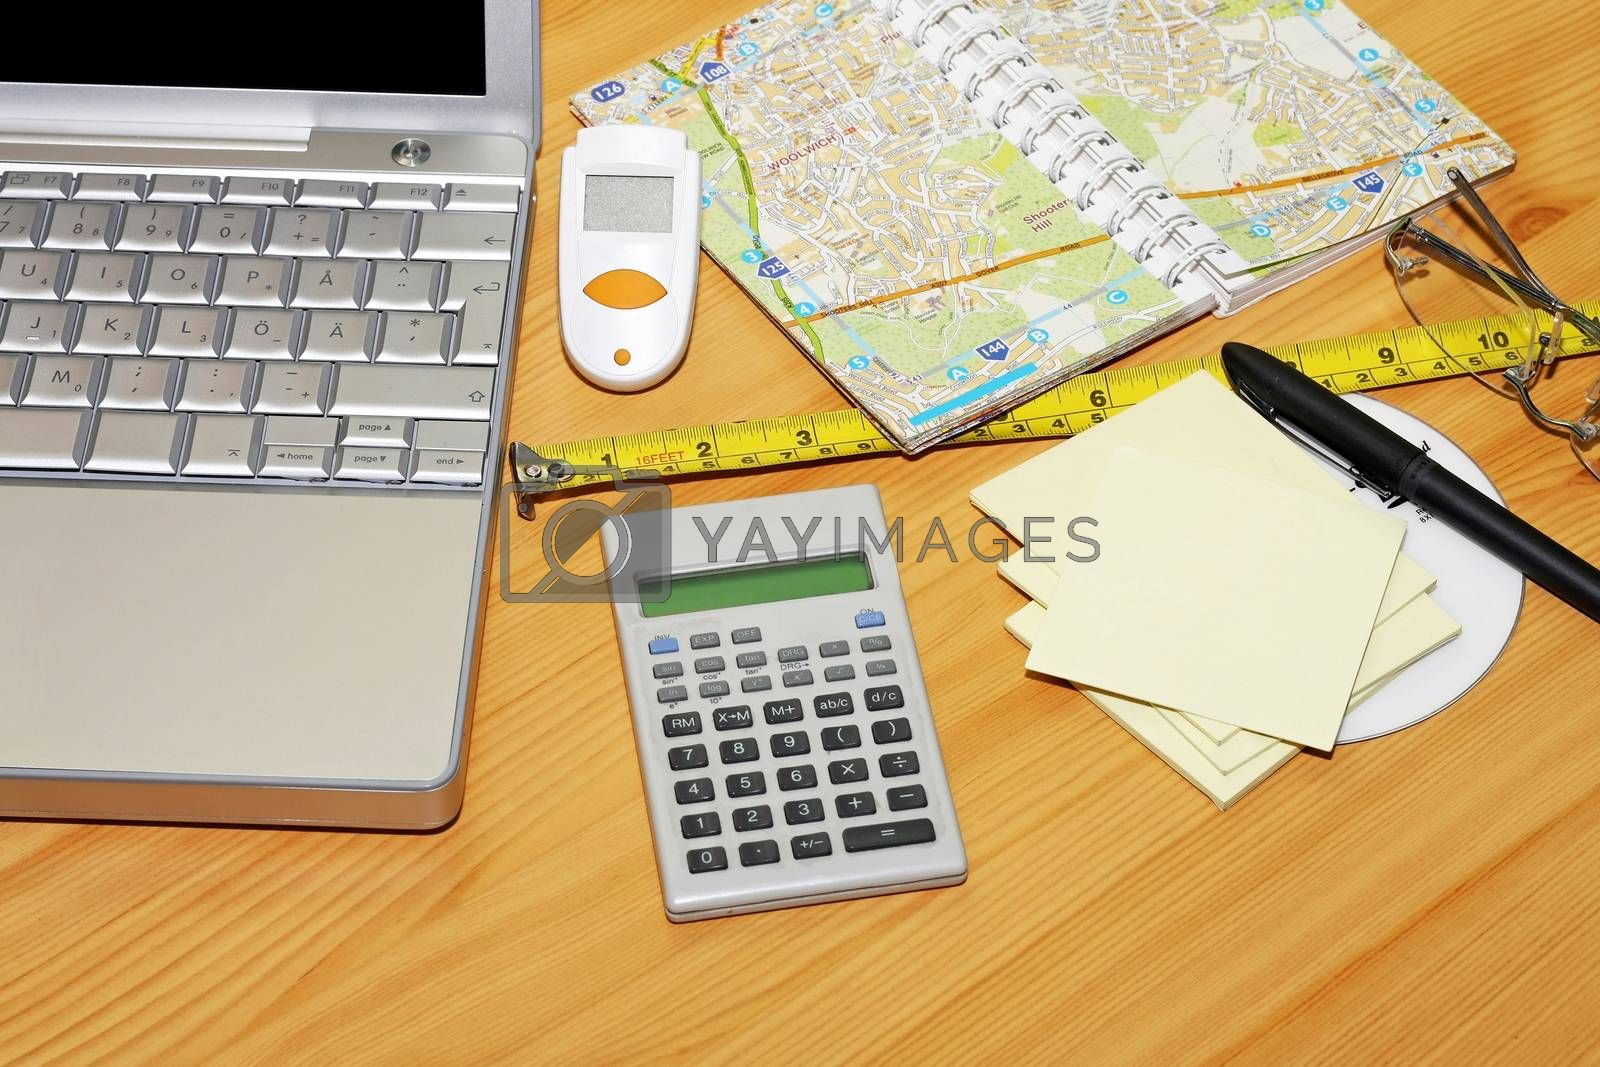 Notebook map and calculator at wooden desk